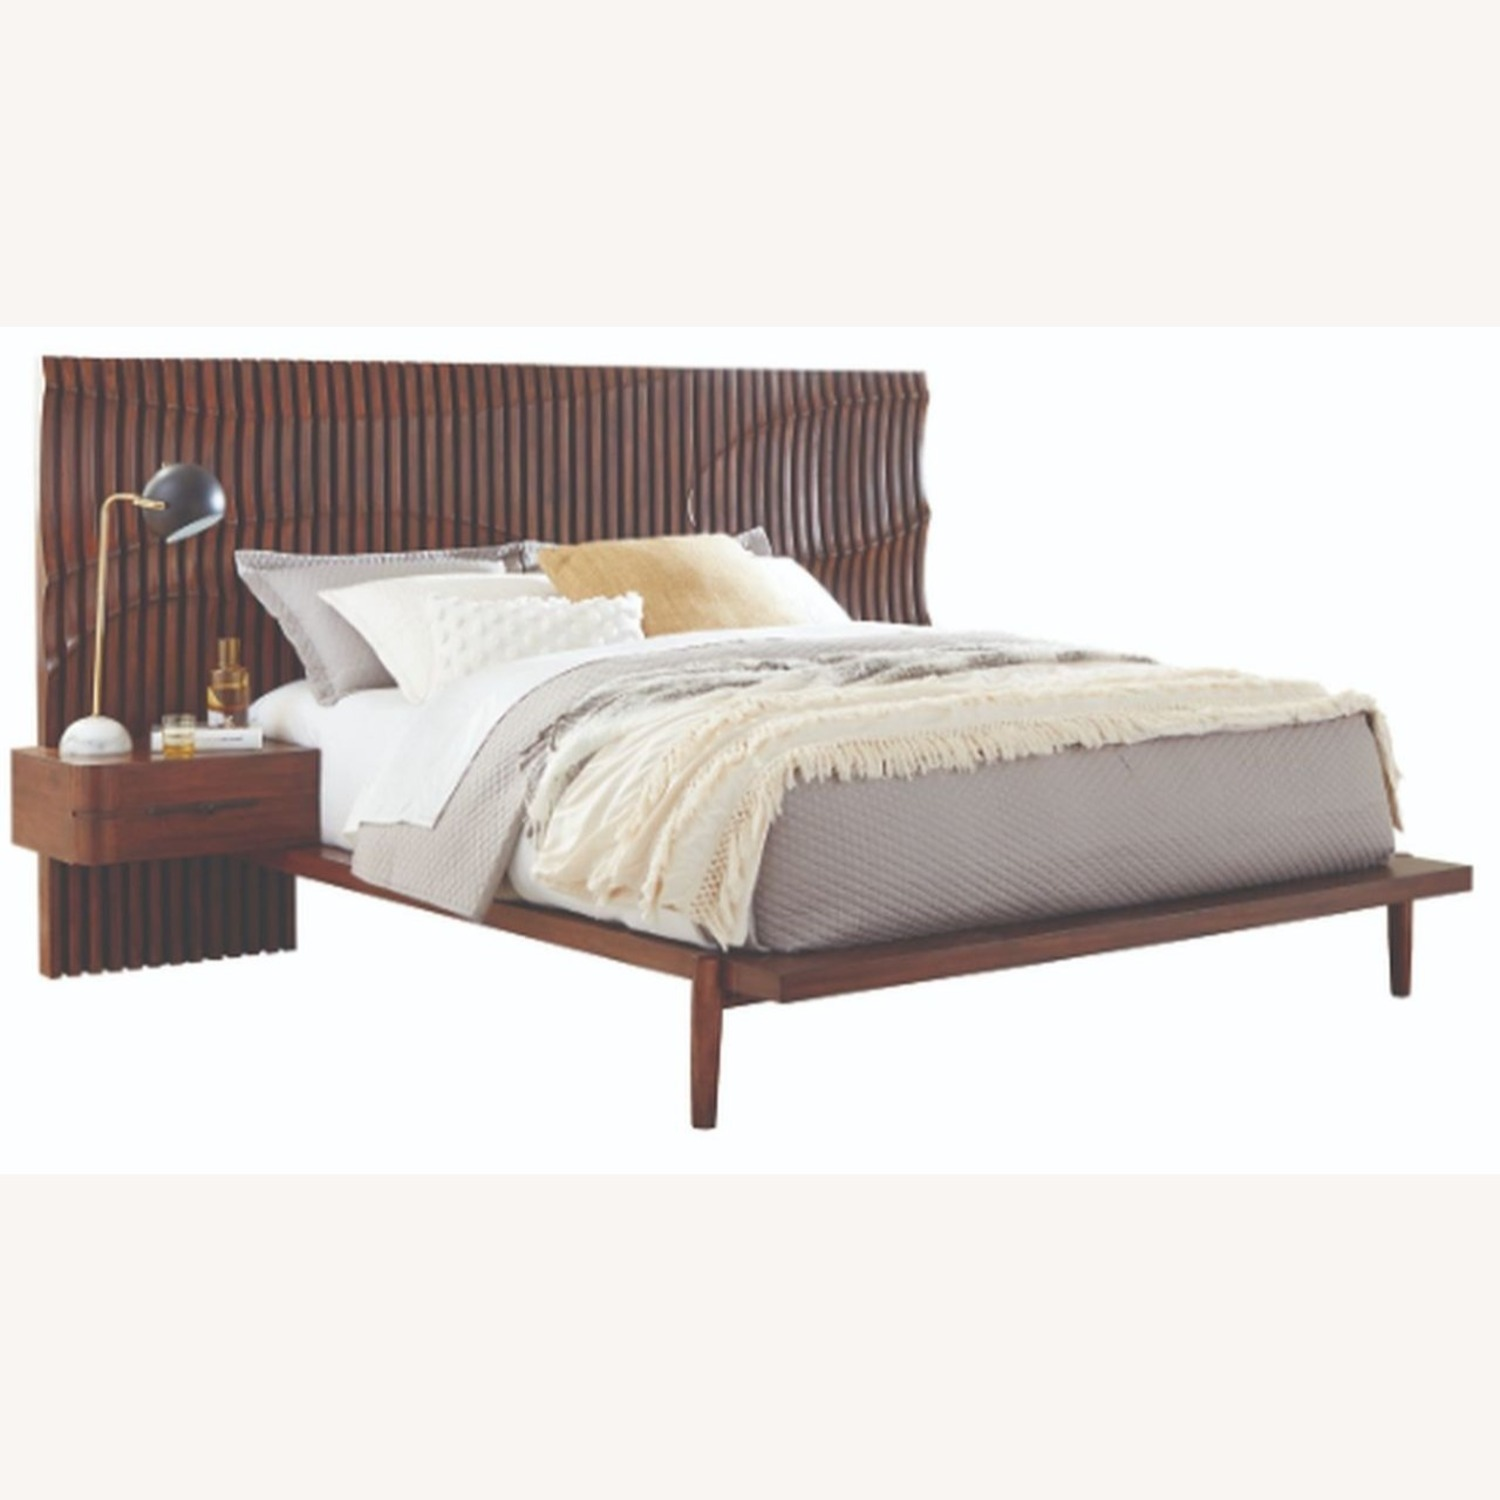 Contemporary King Bed In Dessert Teak Finish - image-0